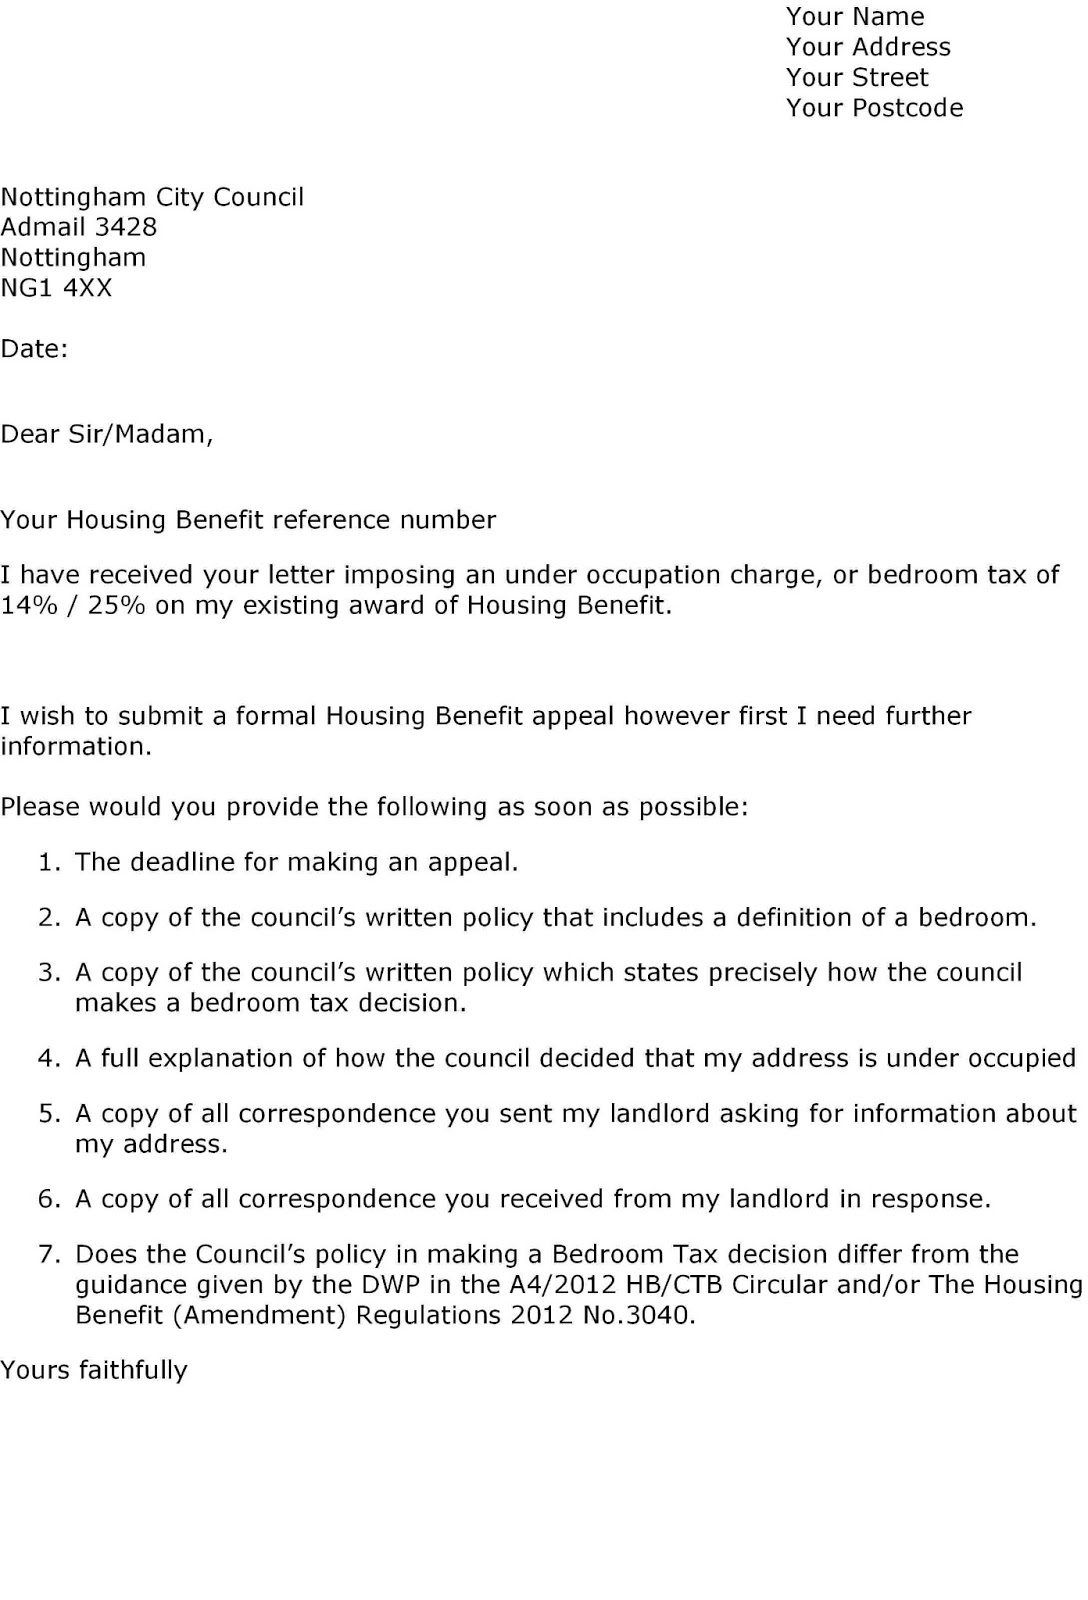 Defend Council Tax Benefits: Letter to Council Challenging ... | 1088 x 1600 jpeg 205kB